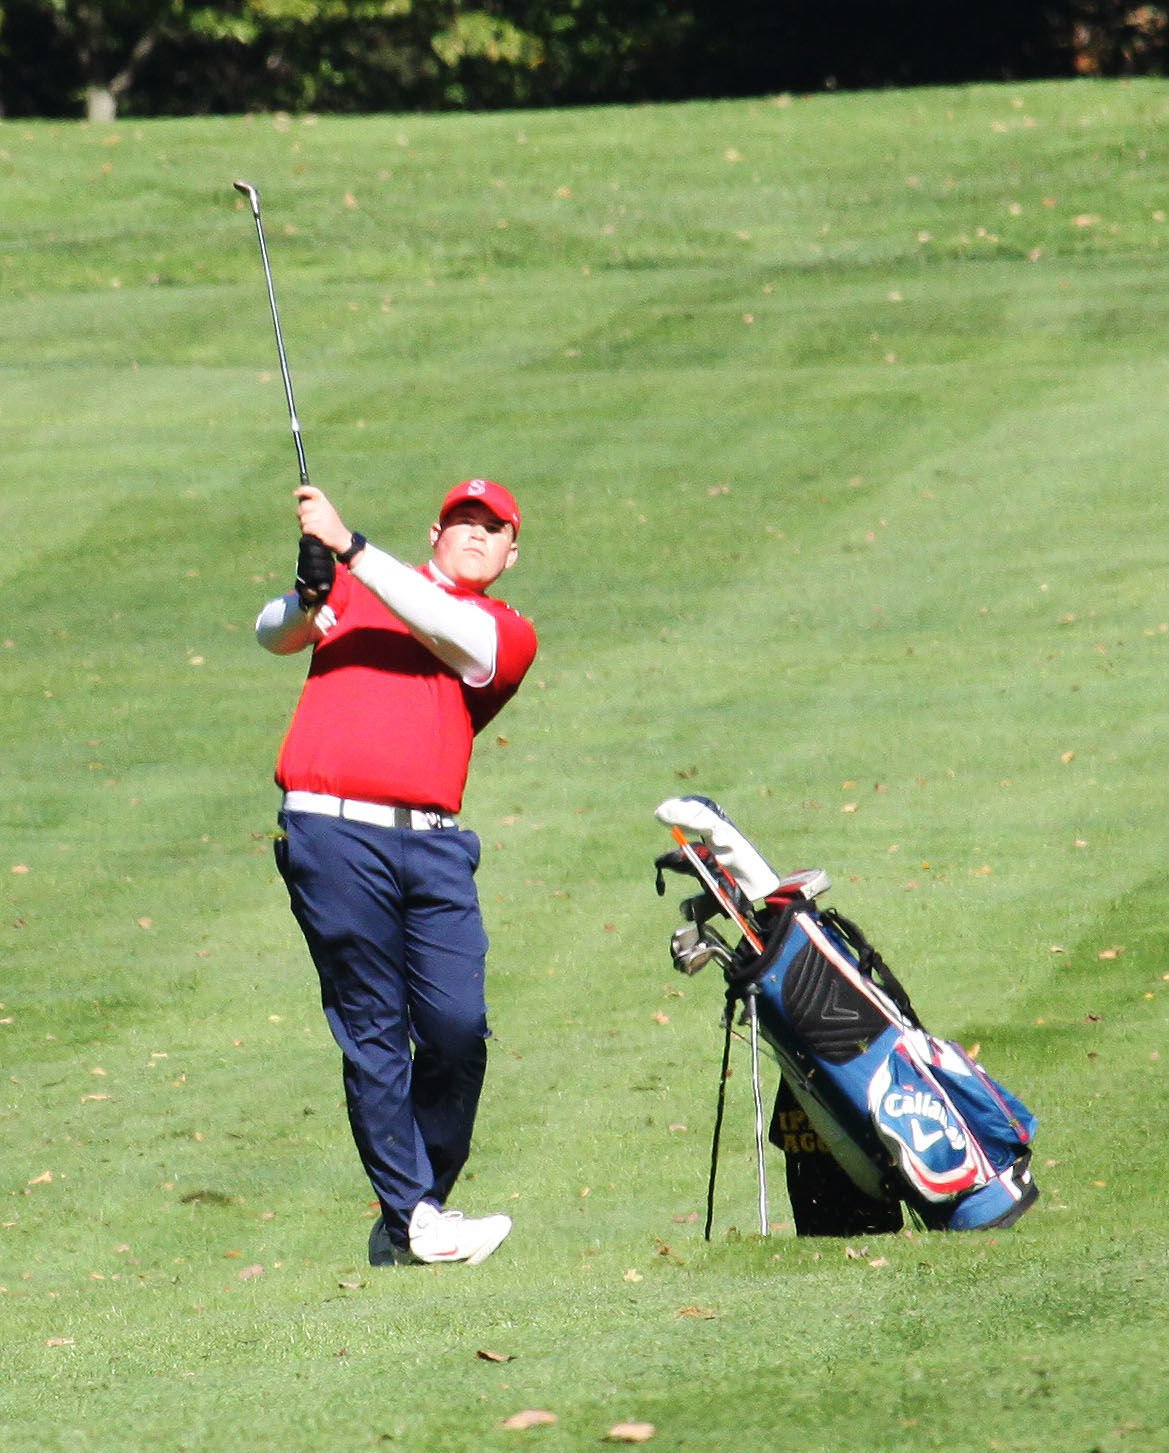 Sayre duo plays well at Districts